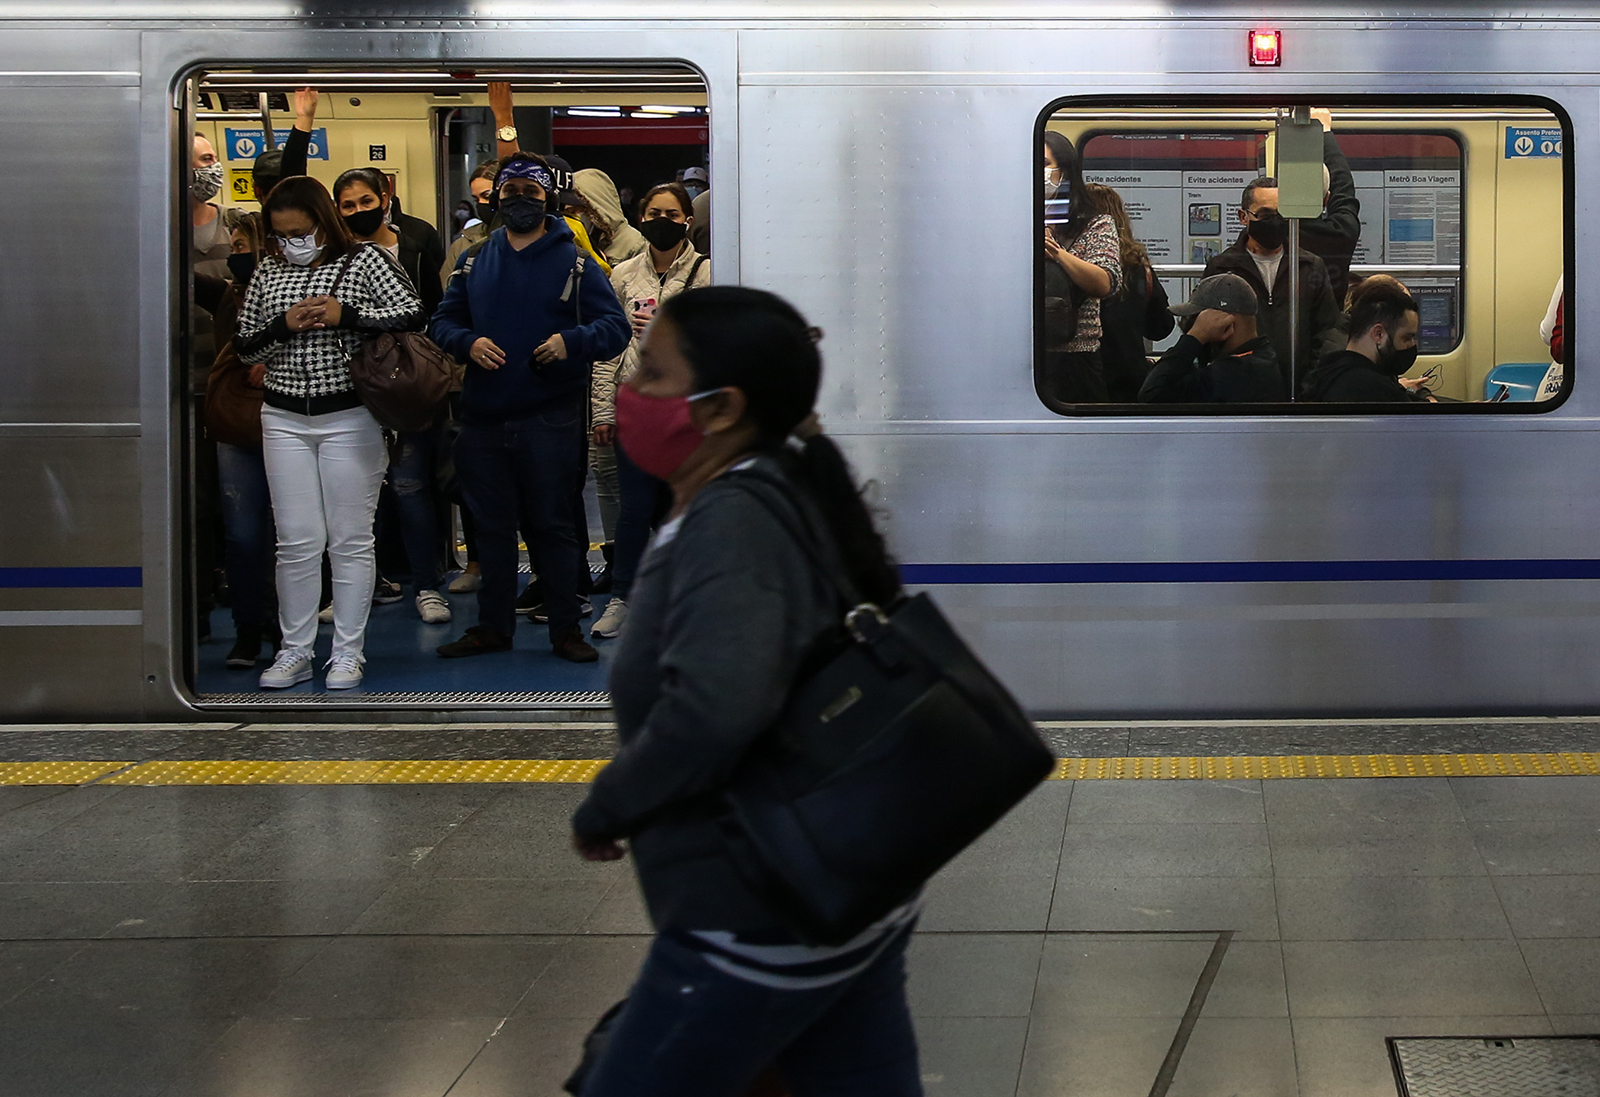 Passengers wearing face masks ride a subway car in downtown Sao Paulo on June 29, in Sao Paulo, Brazil.